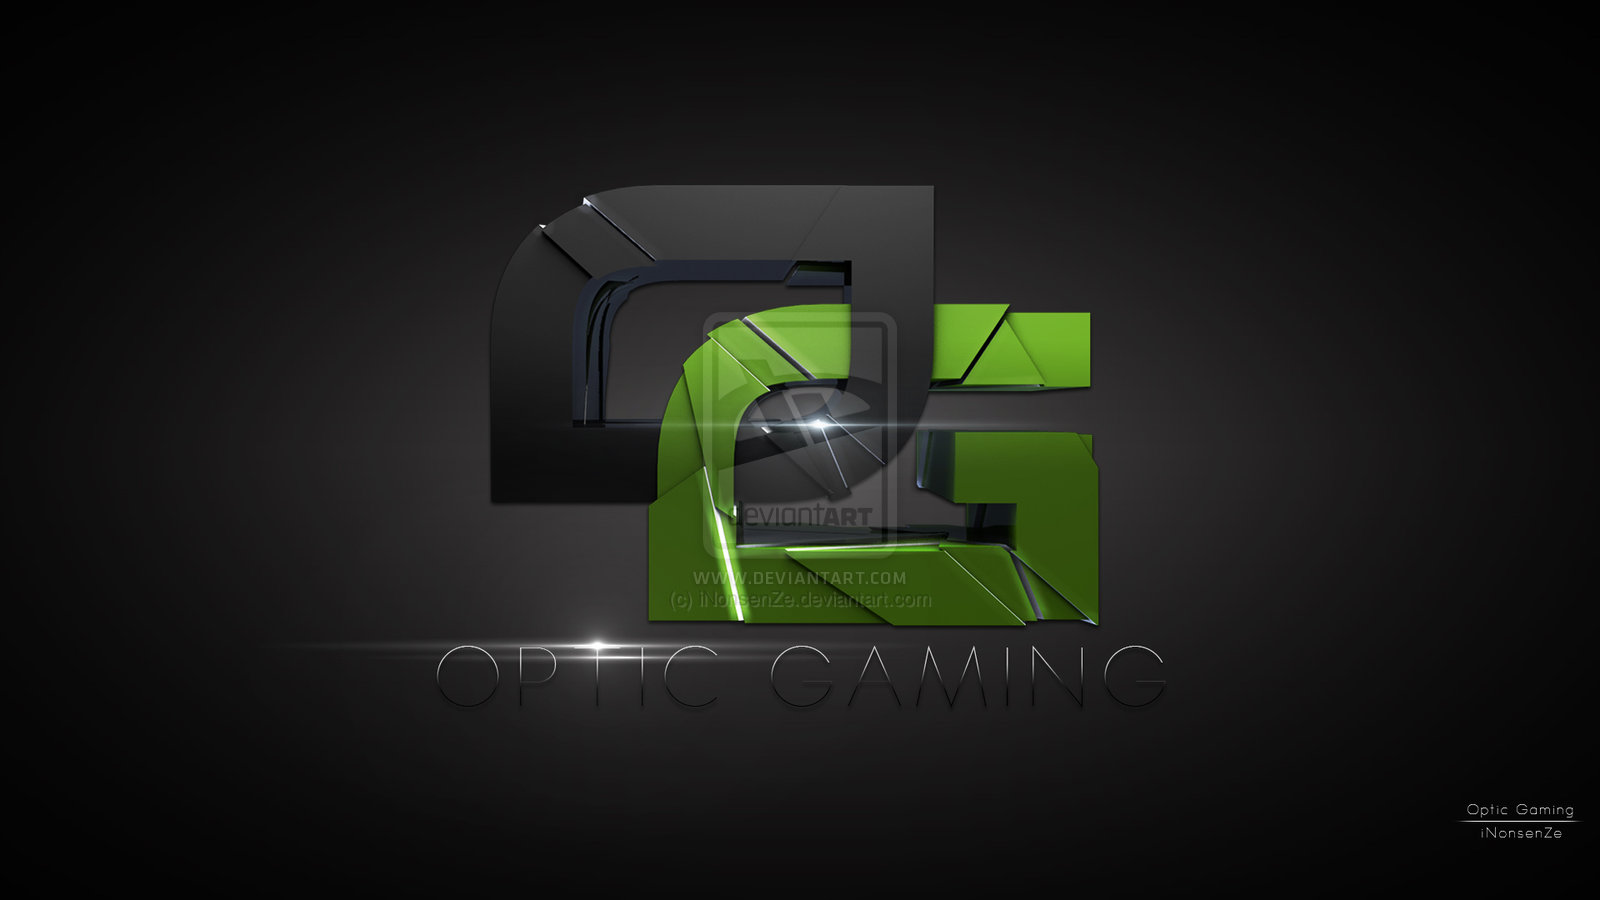 optic gaming by inonsenze digital art 3 dimensional art other optic